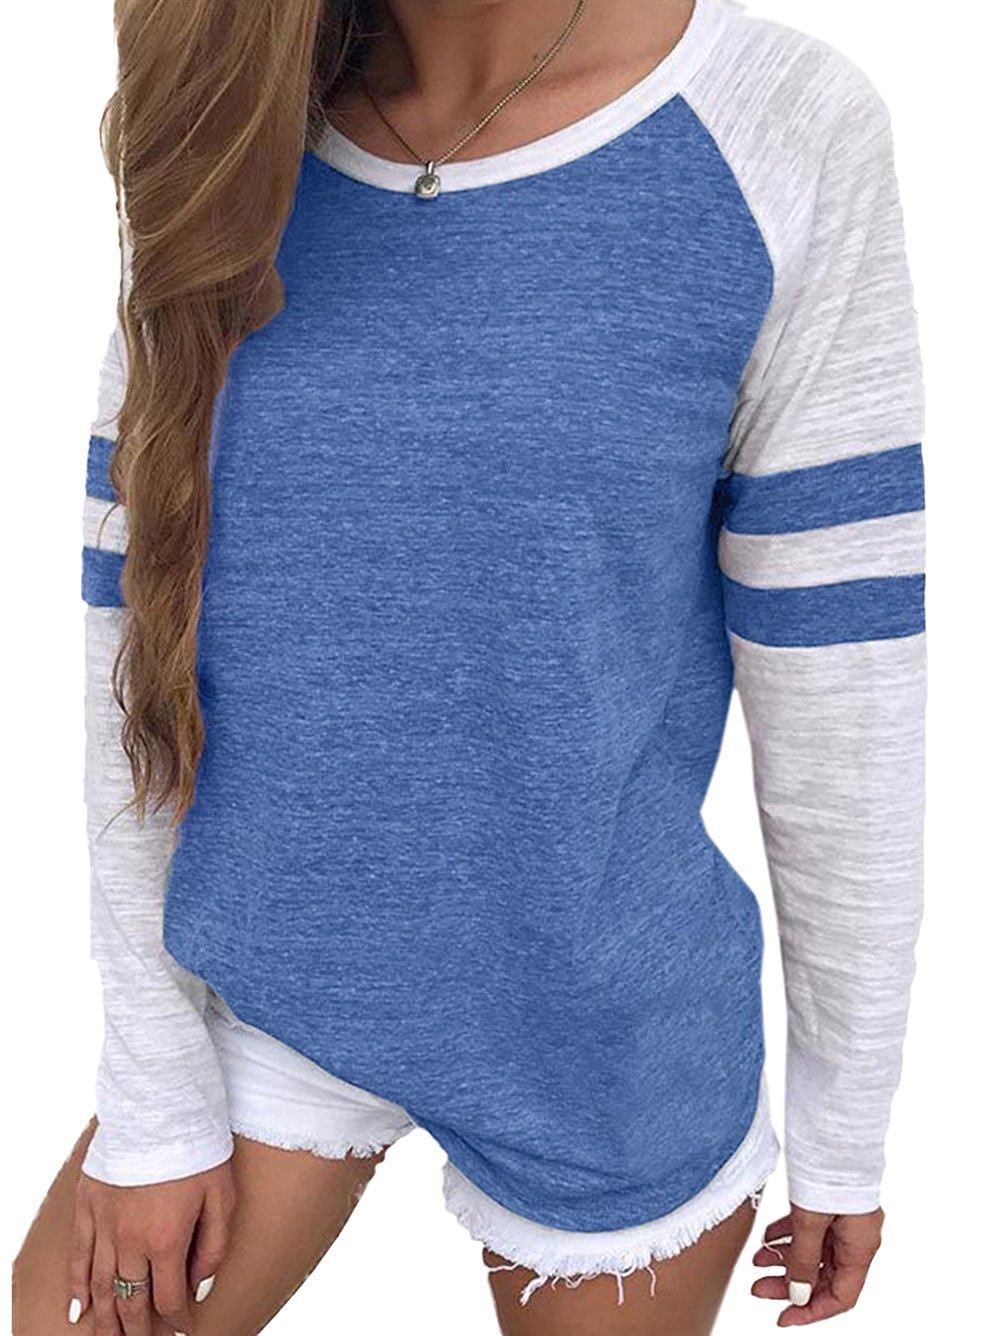 SUNNYME YOTGAP Women's Tee Shirts Long Sleeve Blouses Baseball Colorblock Striped Tops Blue M